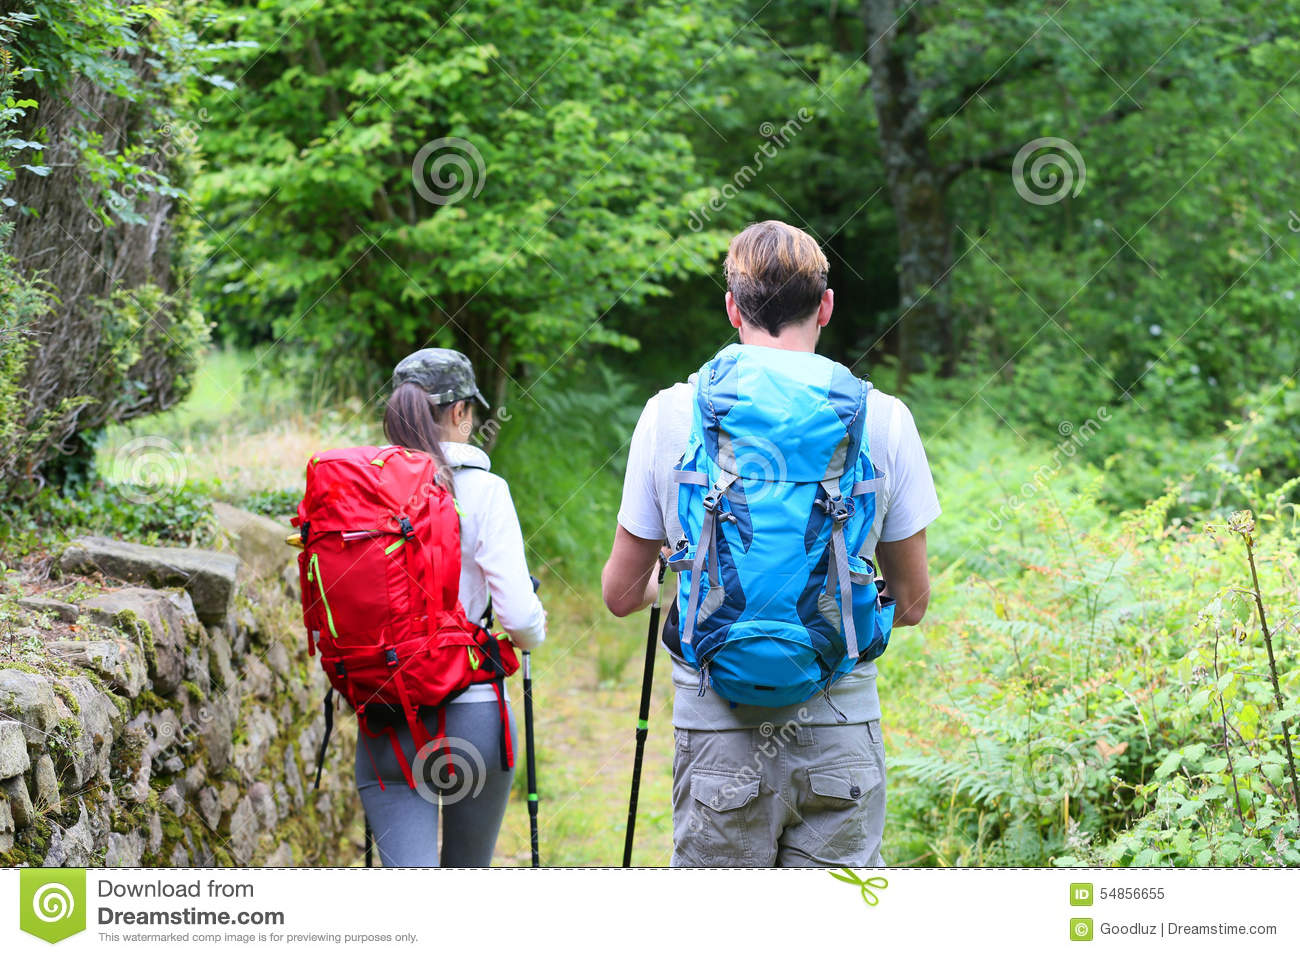 Backpackers hikers walking in forest